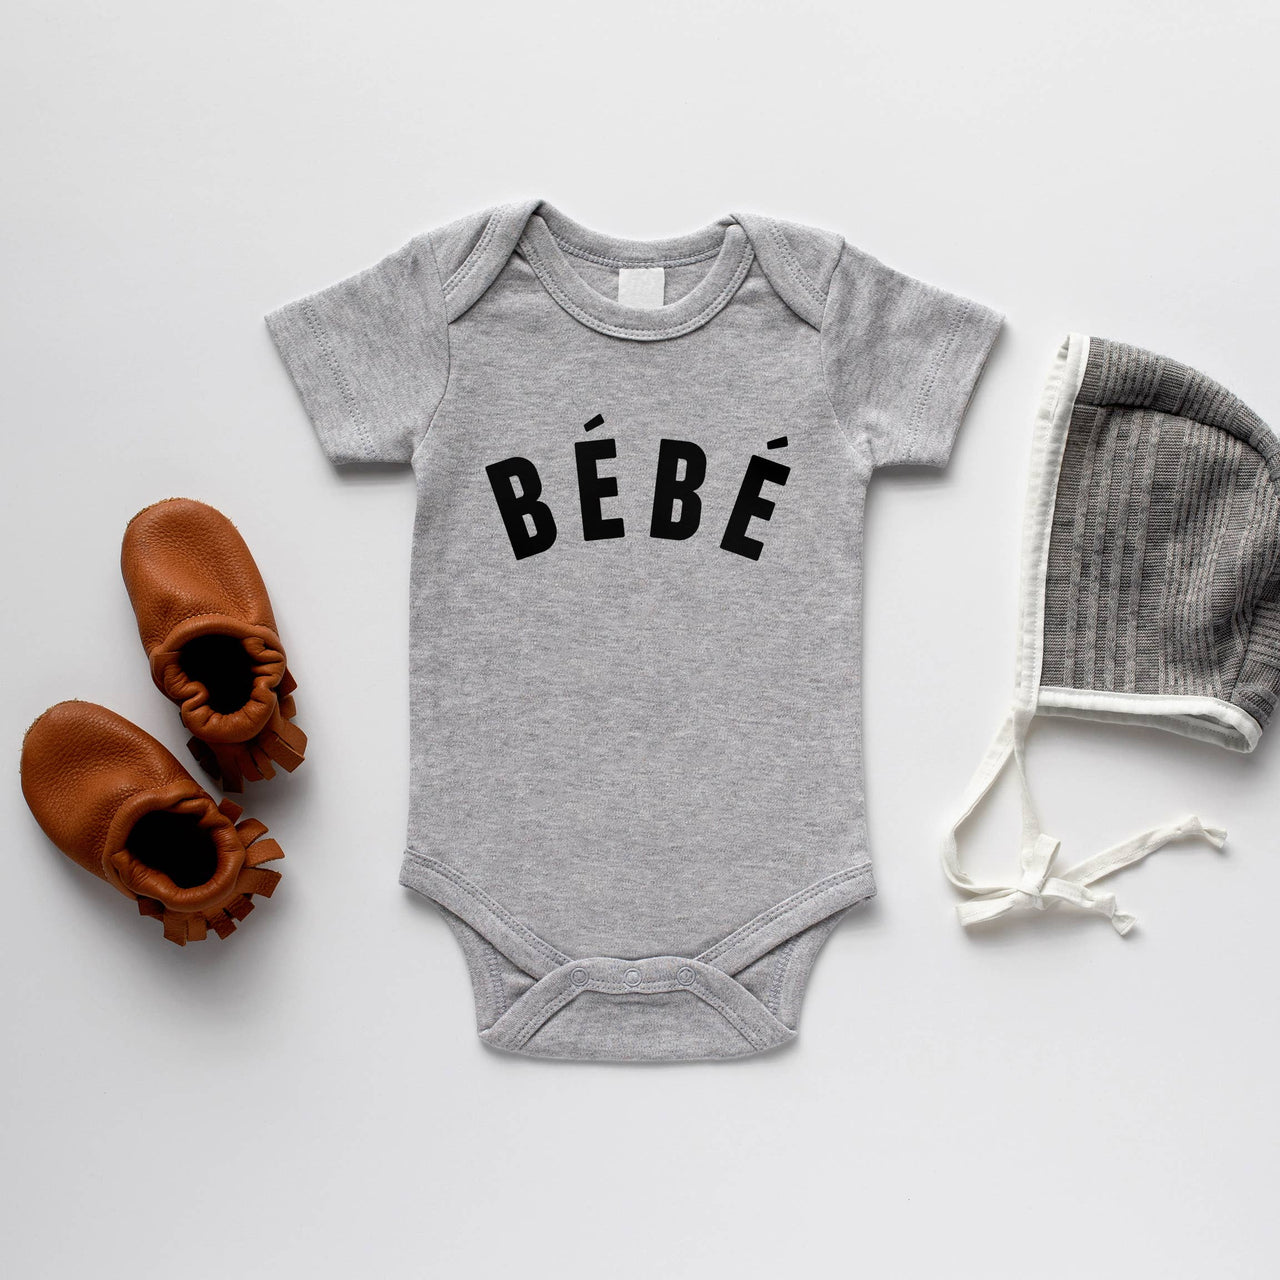 Gray Bébé French-Inspired Organic Baby Bodysuit